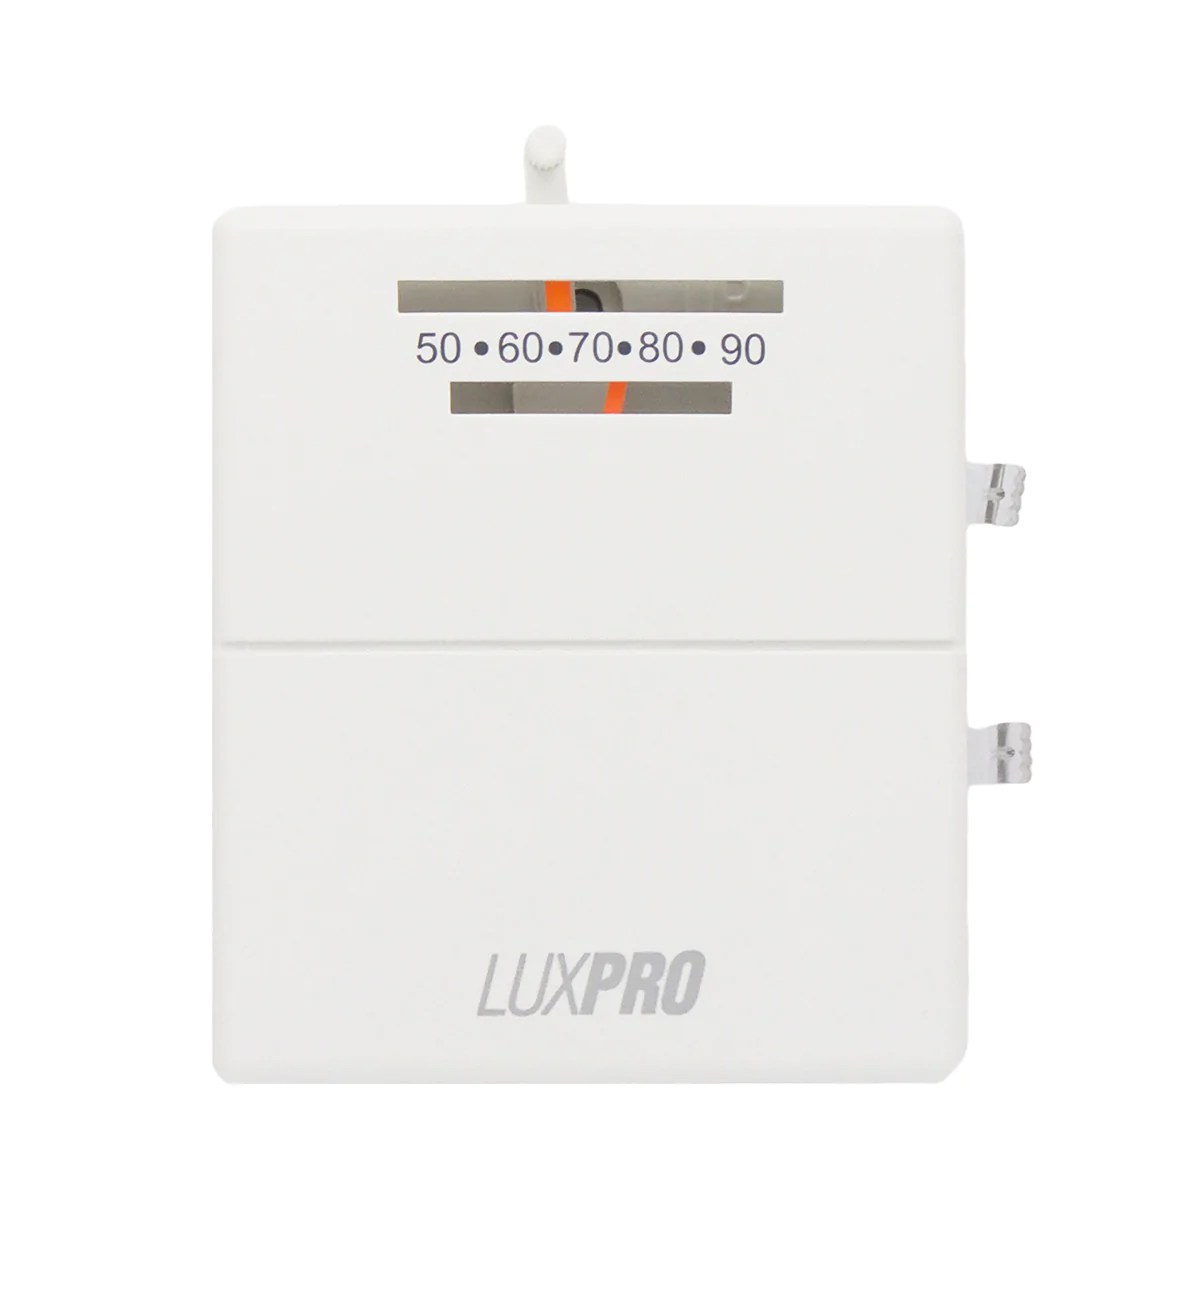 luxpro psm40sa mechanical snap action 2 wire heat only thermostat [ 1200 x 1303 Pixel ]